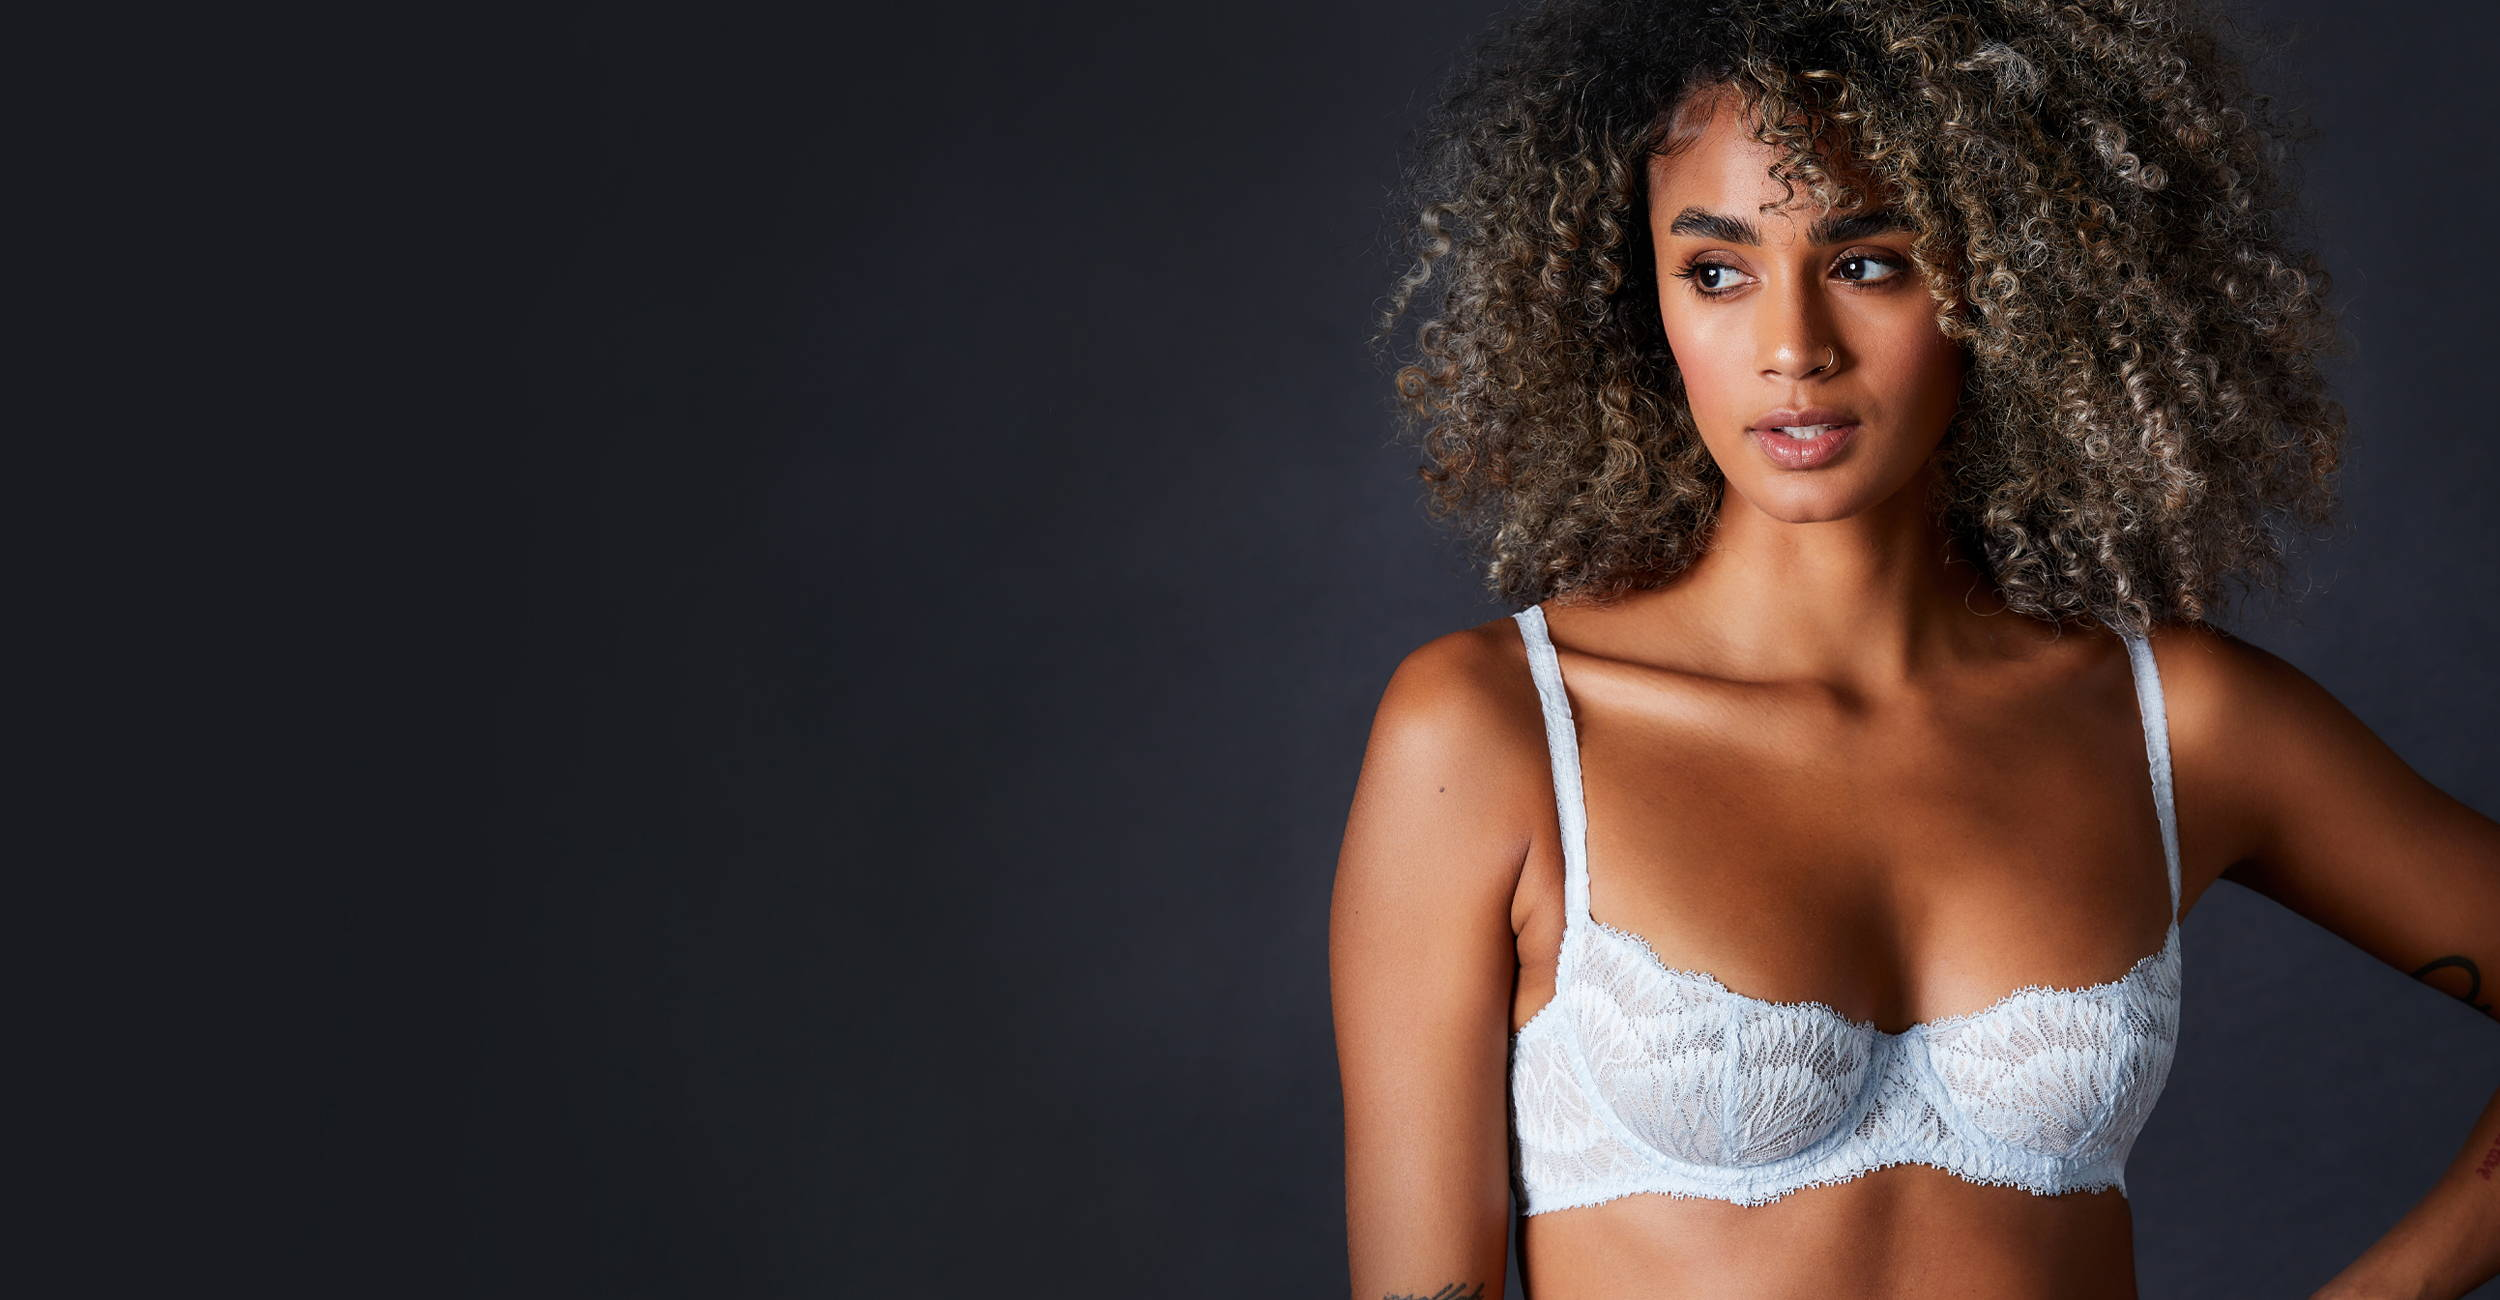 Female model wearing the Journelle Collection Loulou Balconette Bra